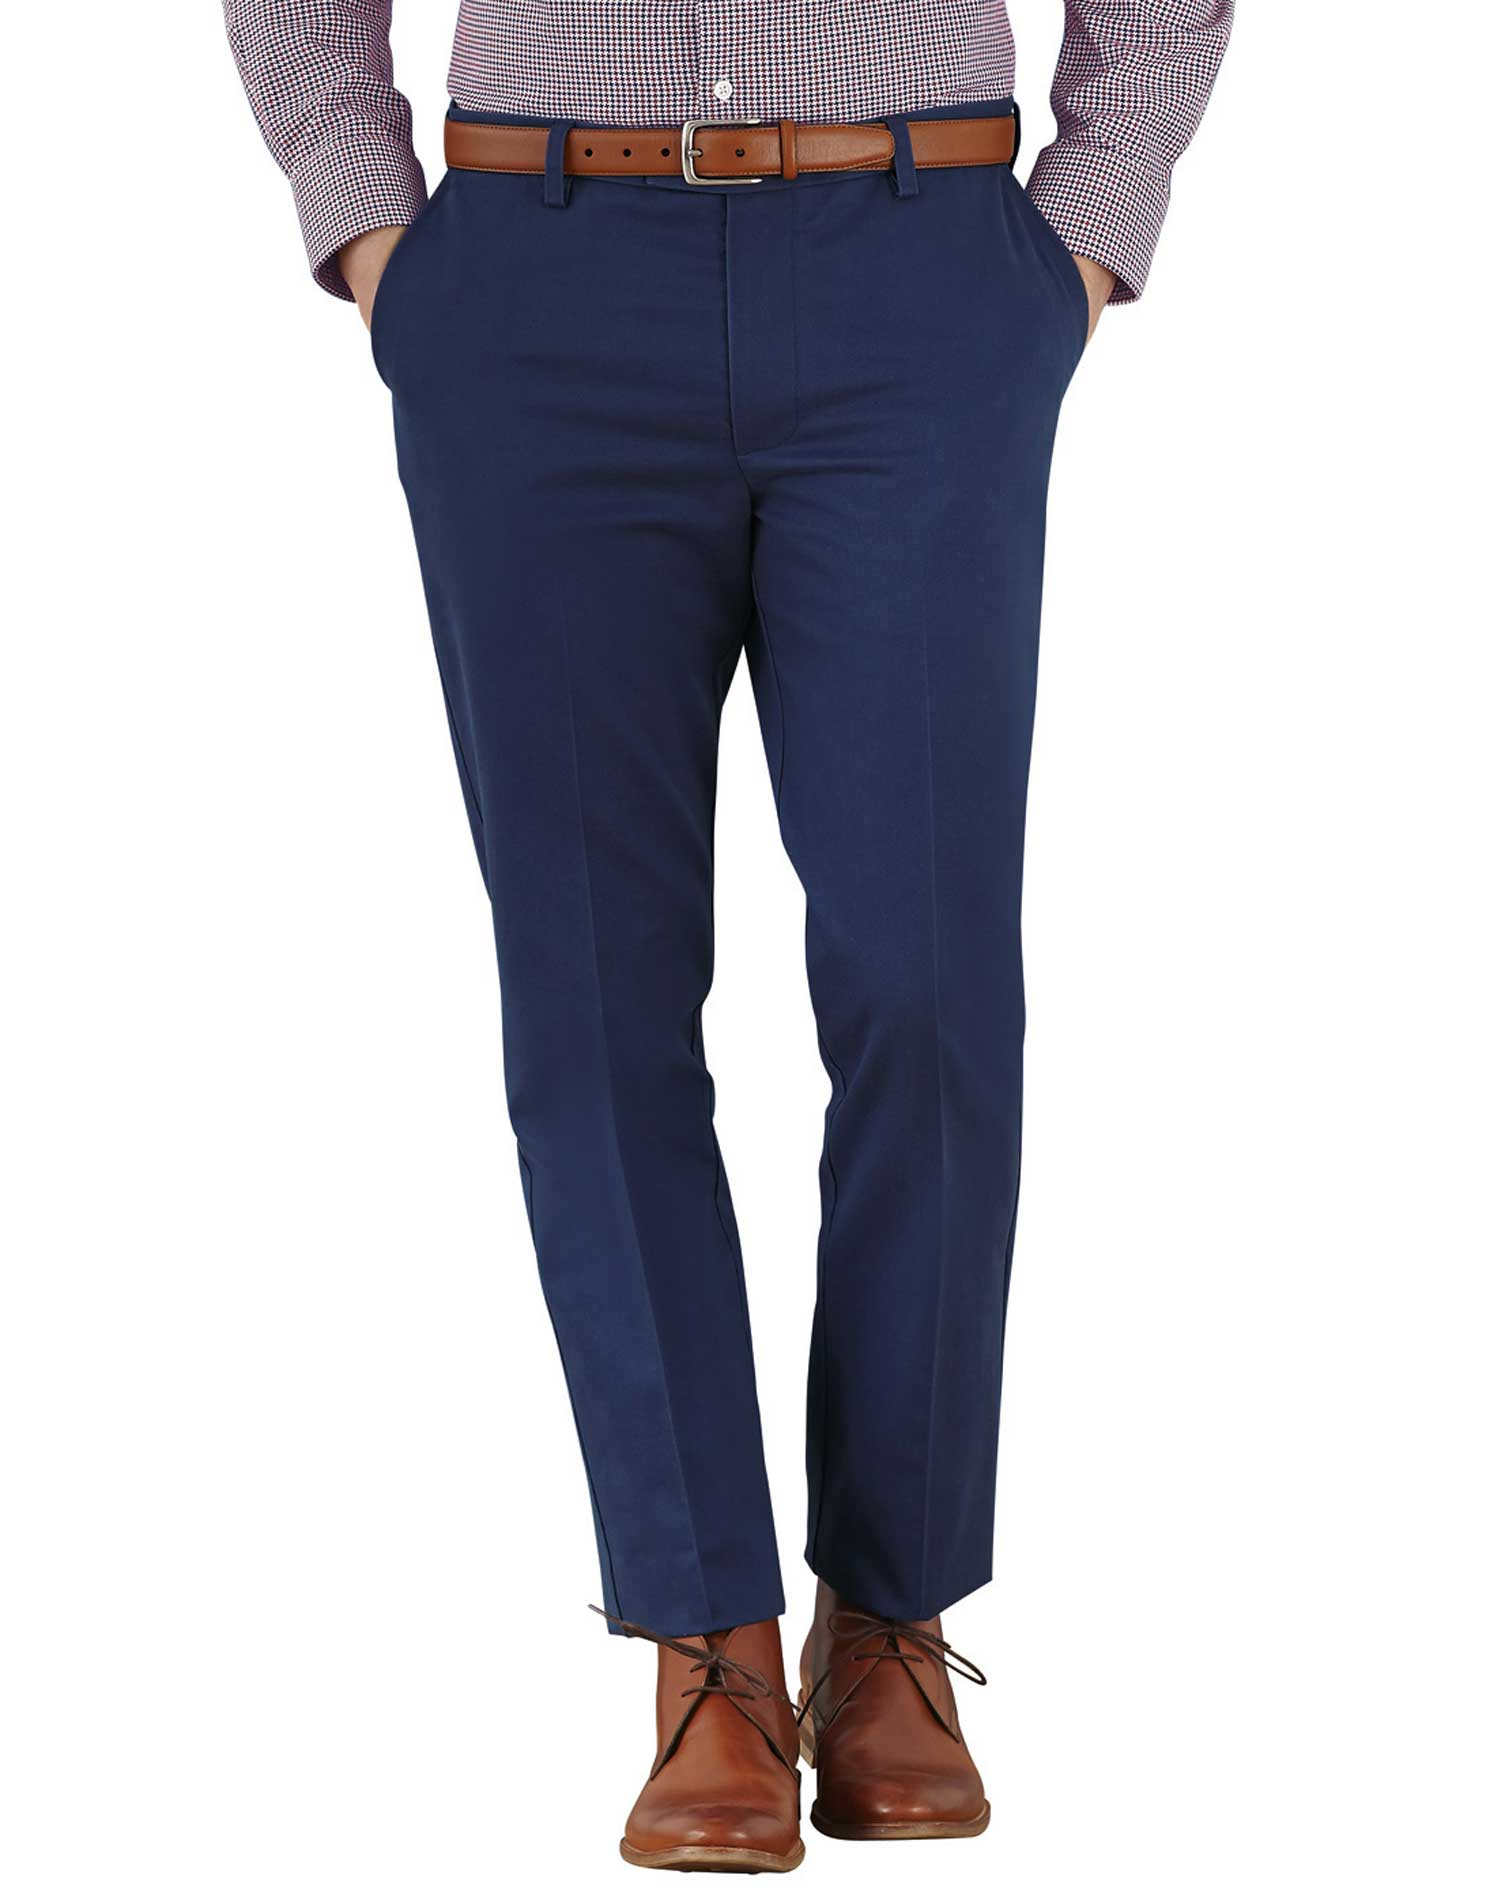 Find mens blue chino pants at ShopStyle. Shop the latest collection of mens blue chino pants from the most popular stores - all in one place.